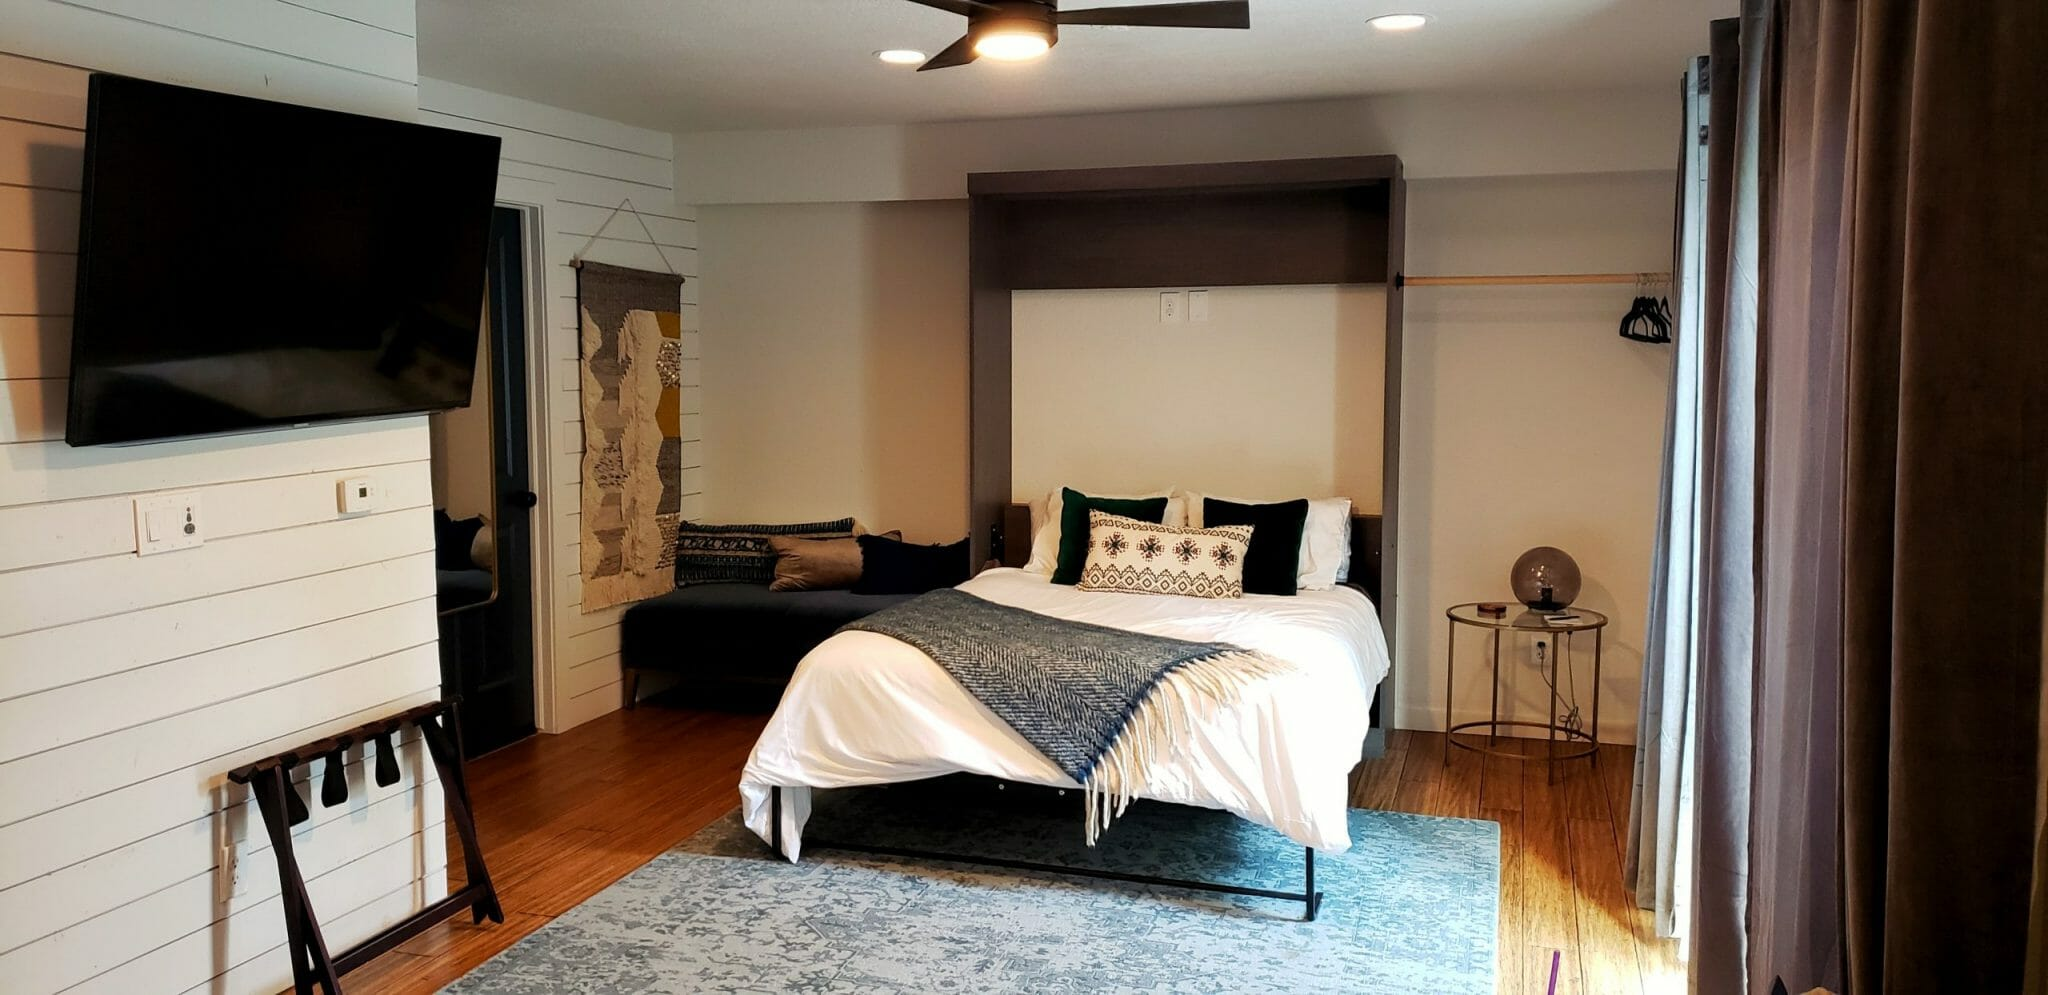 Hotel room sleeping area with white bedding and large blue area rug